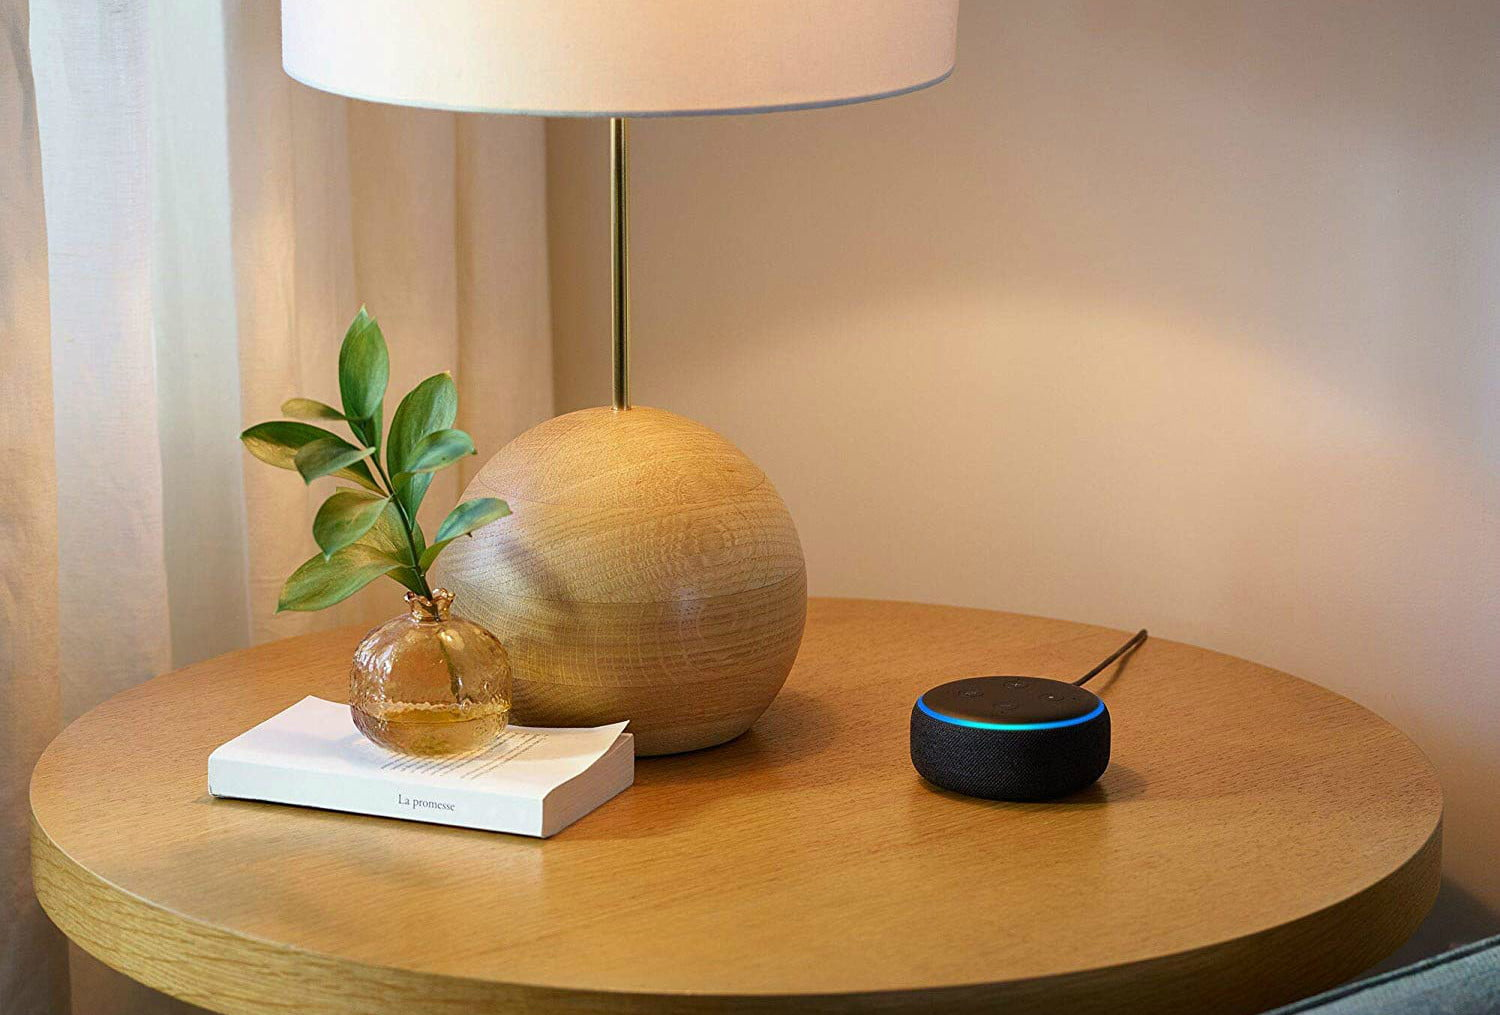 amazon slashes prices on security cameras and systems fathers day ring floodlight camera hd with echo dot 4